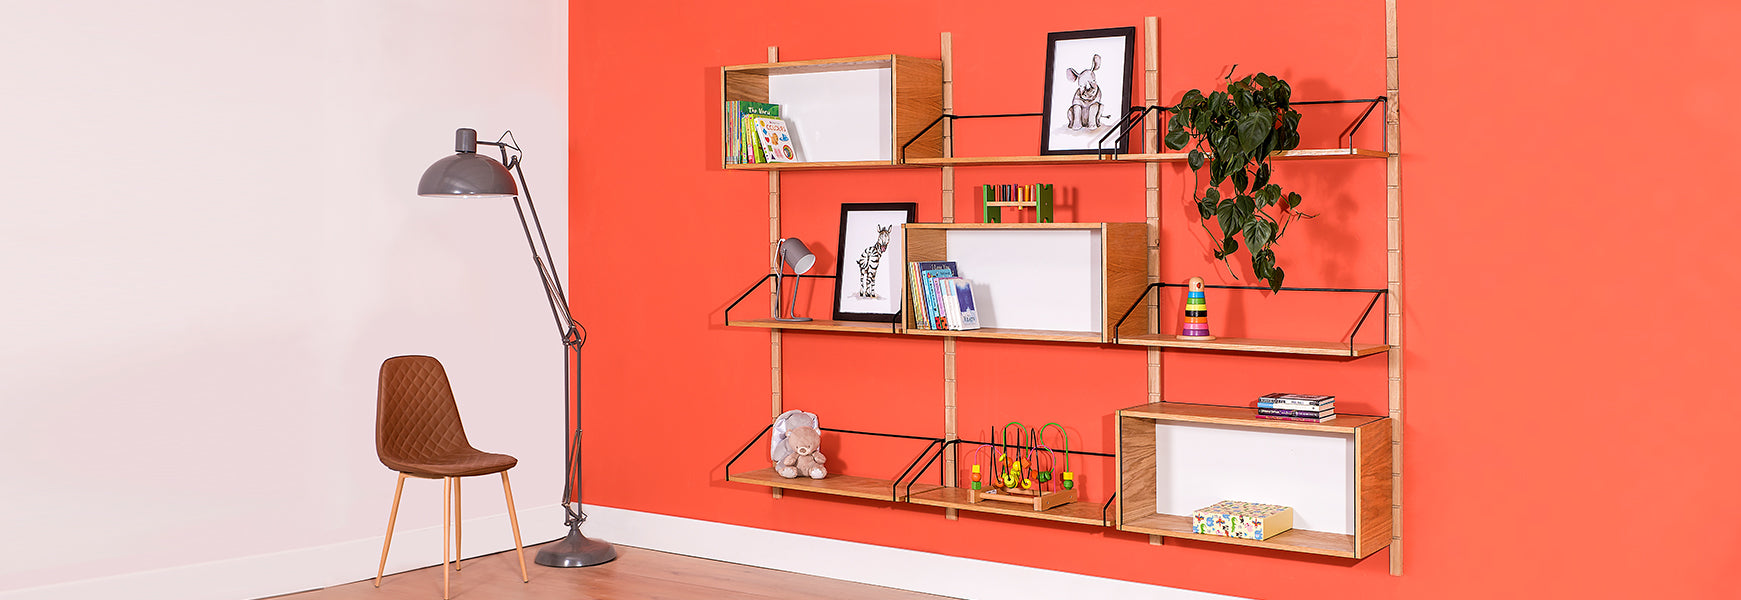 six oak Forma shelves and three oak Formadisplay boxes on adjustable modular shelving system